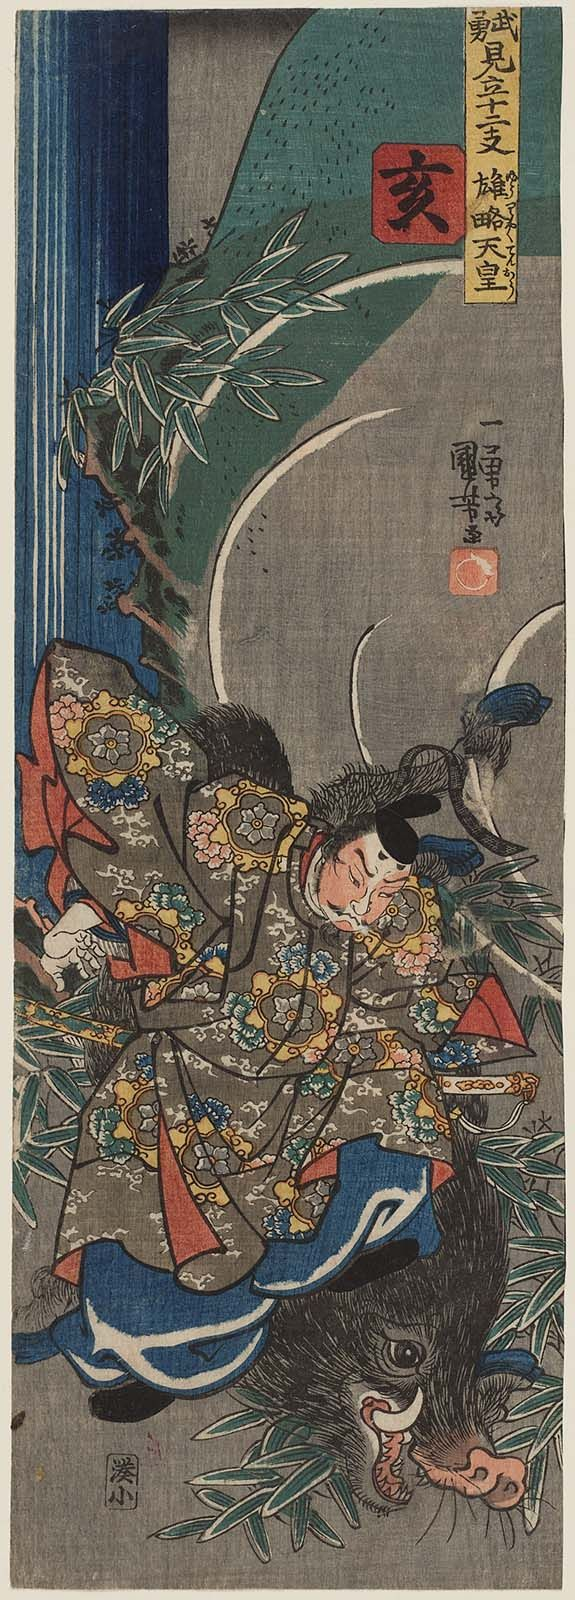 Boar (I): Emperor Yûryaku (Yûryaku Tennô), from the series Heroes Representing the Twelve Animals of the Zodiac (Buyû mitate jûnishi) Japanese about 1840 (Tenpô 11) Artist Utagawa Kuniyoshi (Japanese, 1797–1861), Publisher Minatoya Kohei (Japanese) DIMENSIONS Chûtanzaku; 35.5 x 12.4 cm (14 x 4 7/8 in.) Currently at the MFA ACCESSION NUMBER 11.16577 MEDIUM OR TECHNIQUE Woodblock print (nishiki-e); ink and color on paper